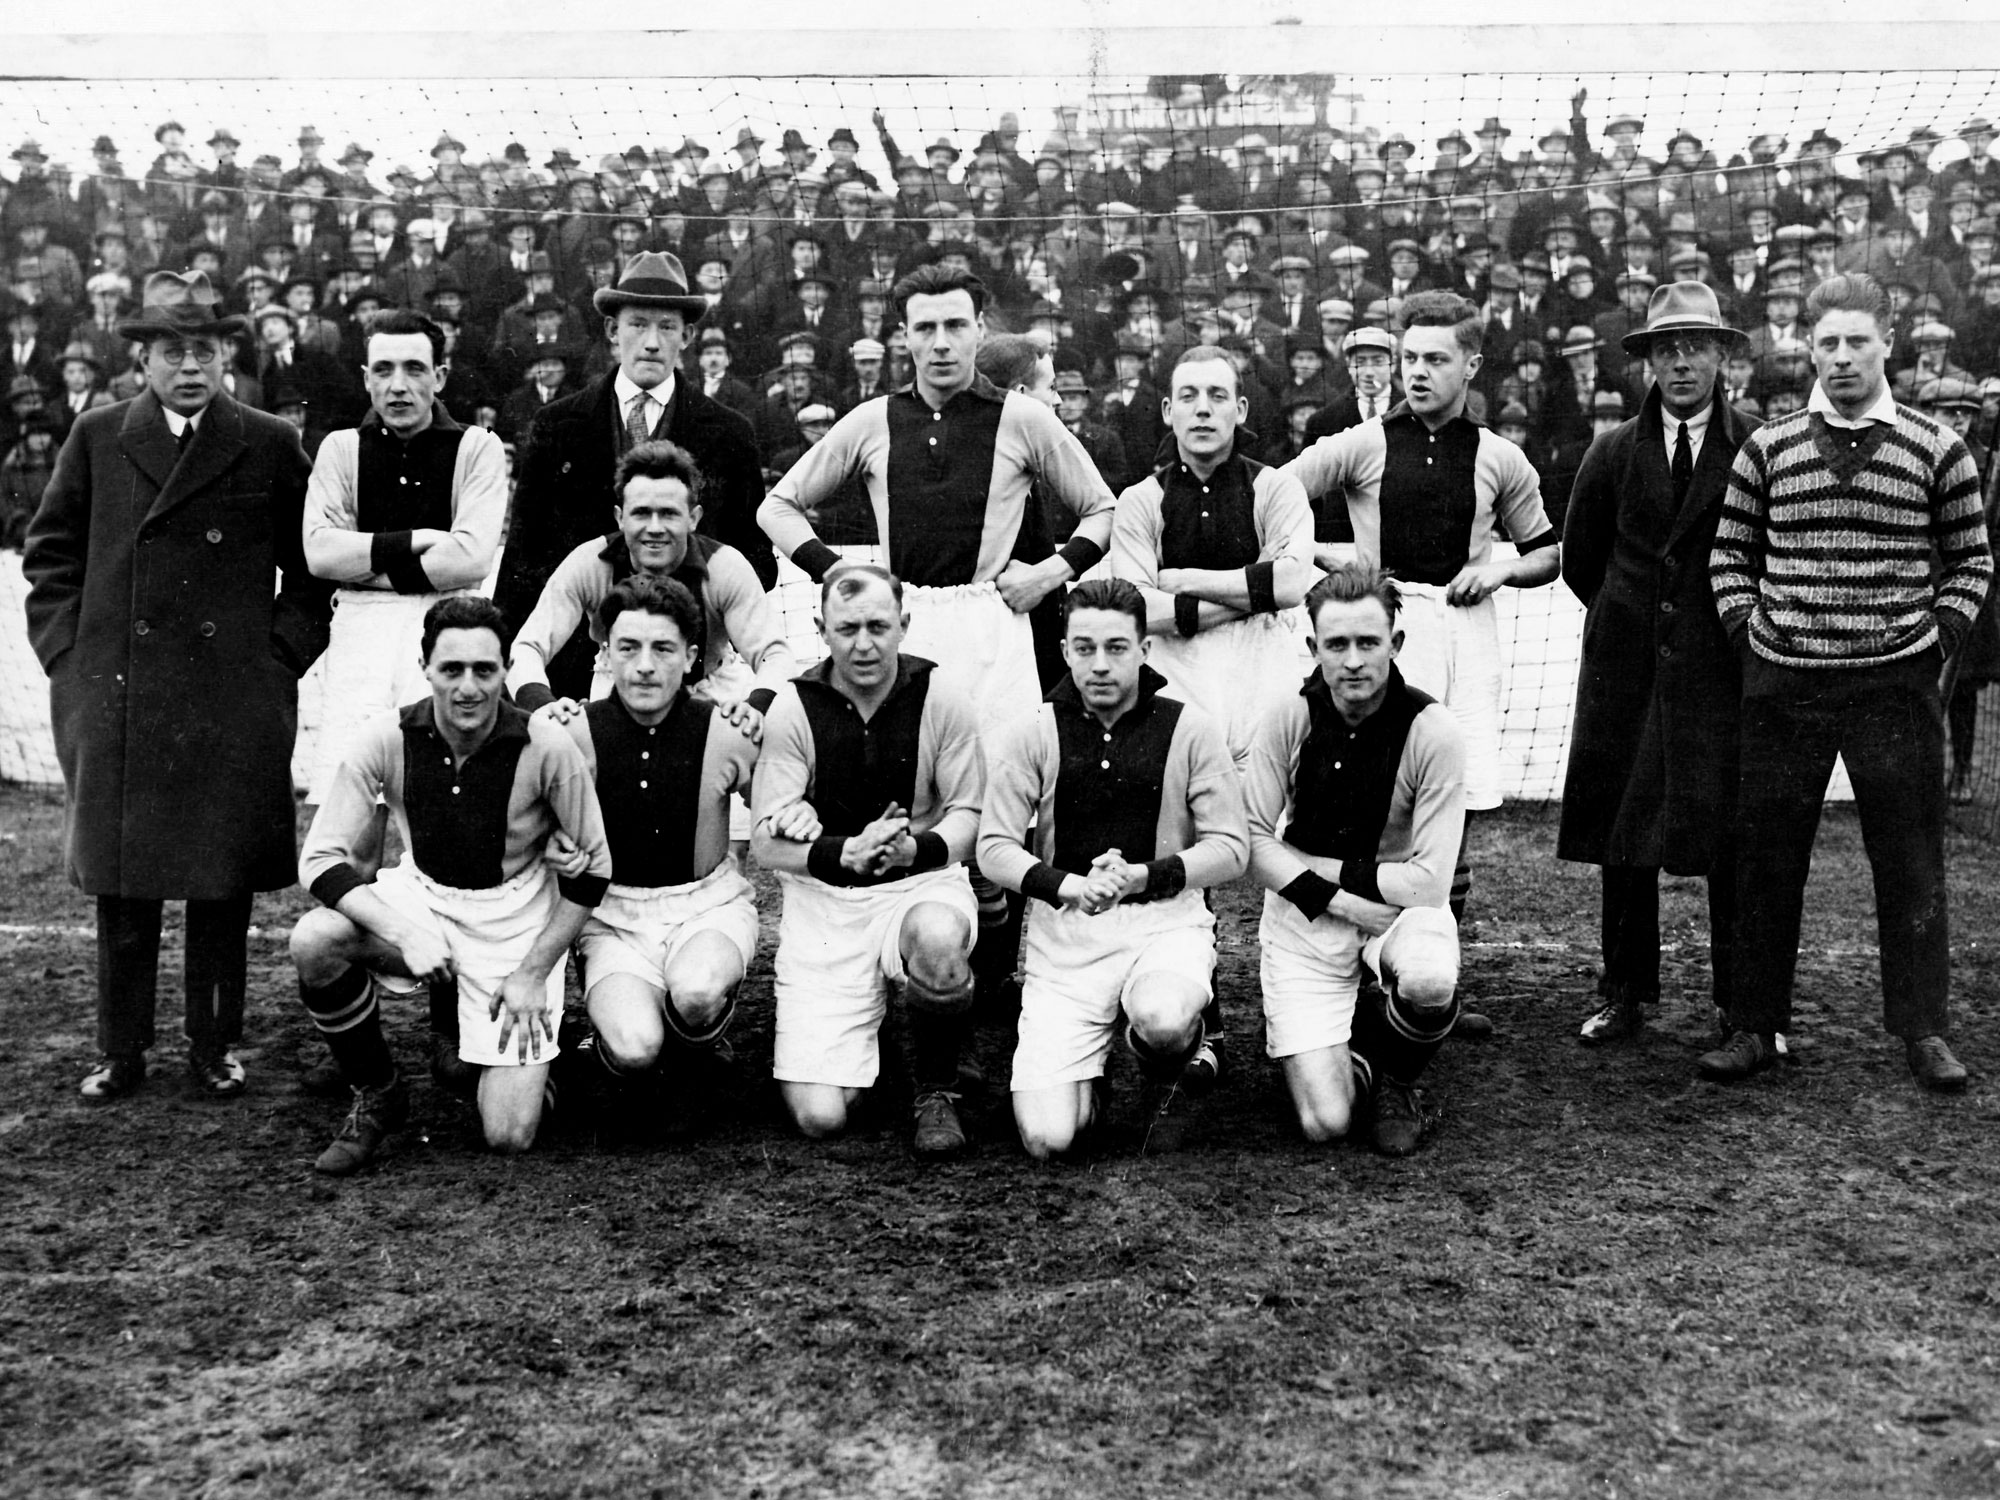 Ajax's 1926 team photo